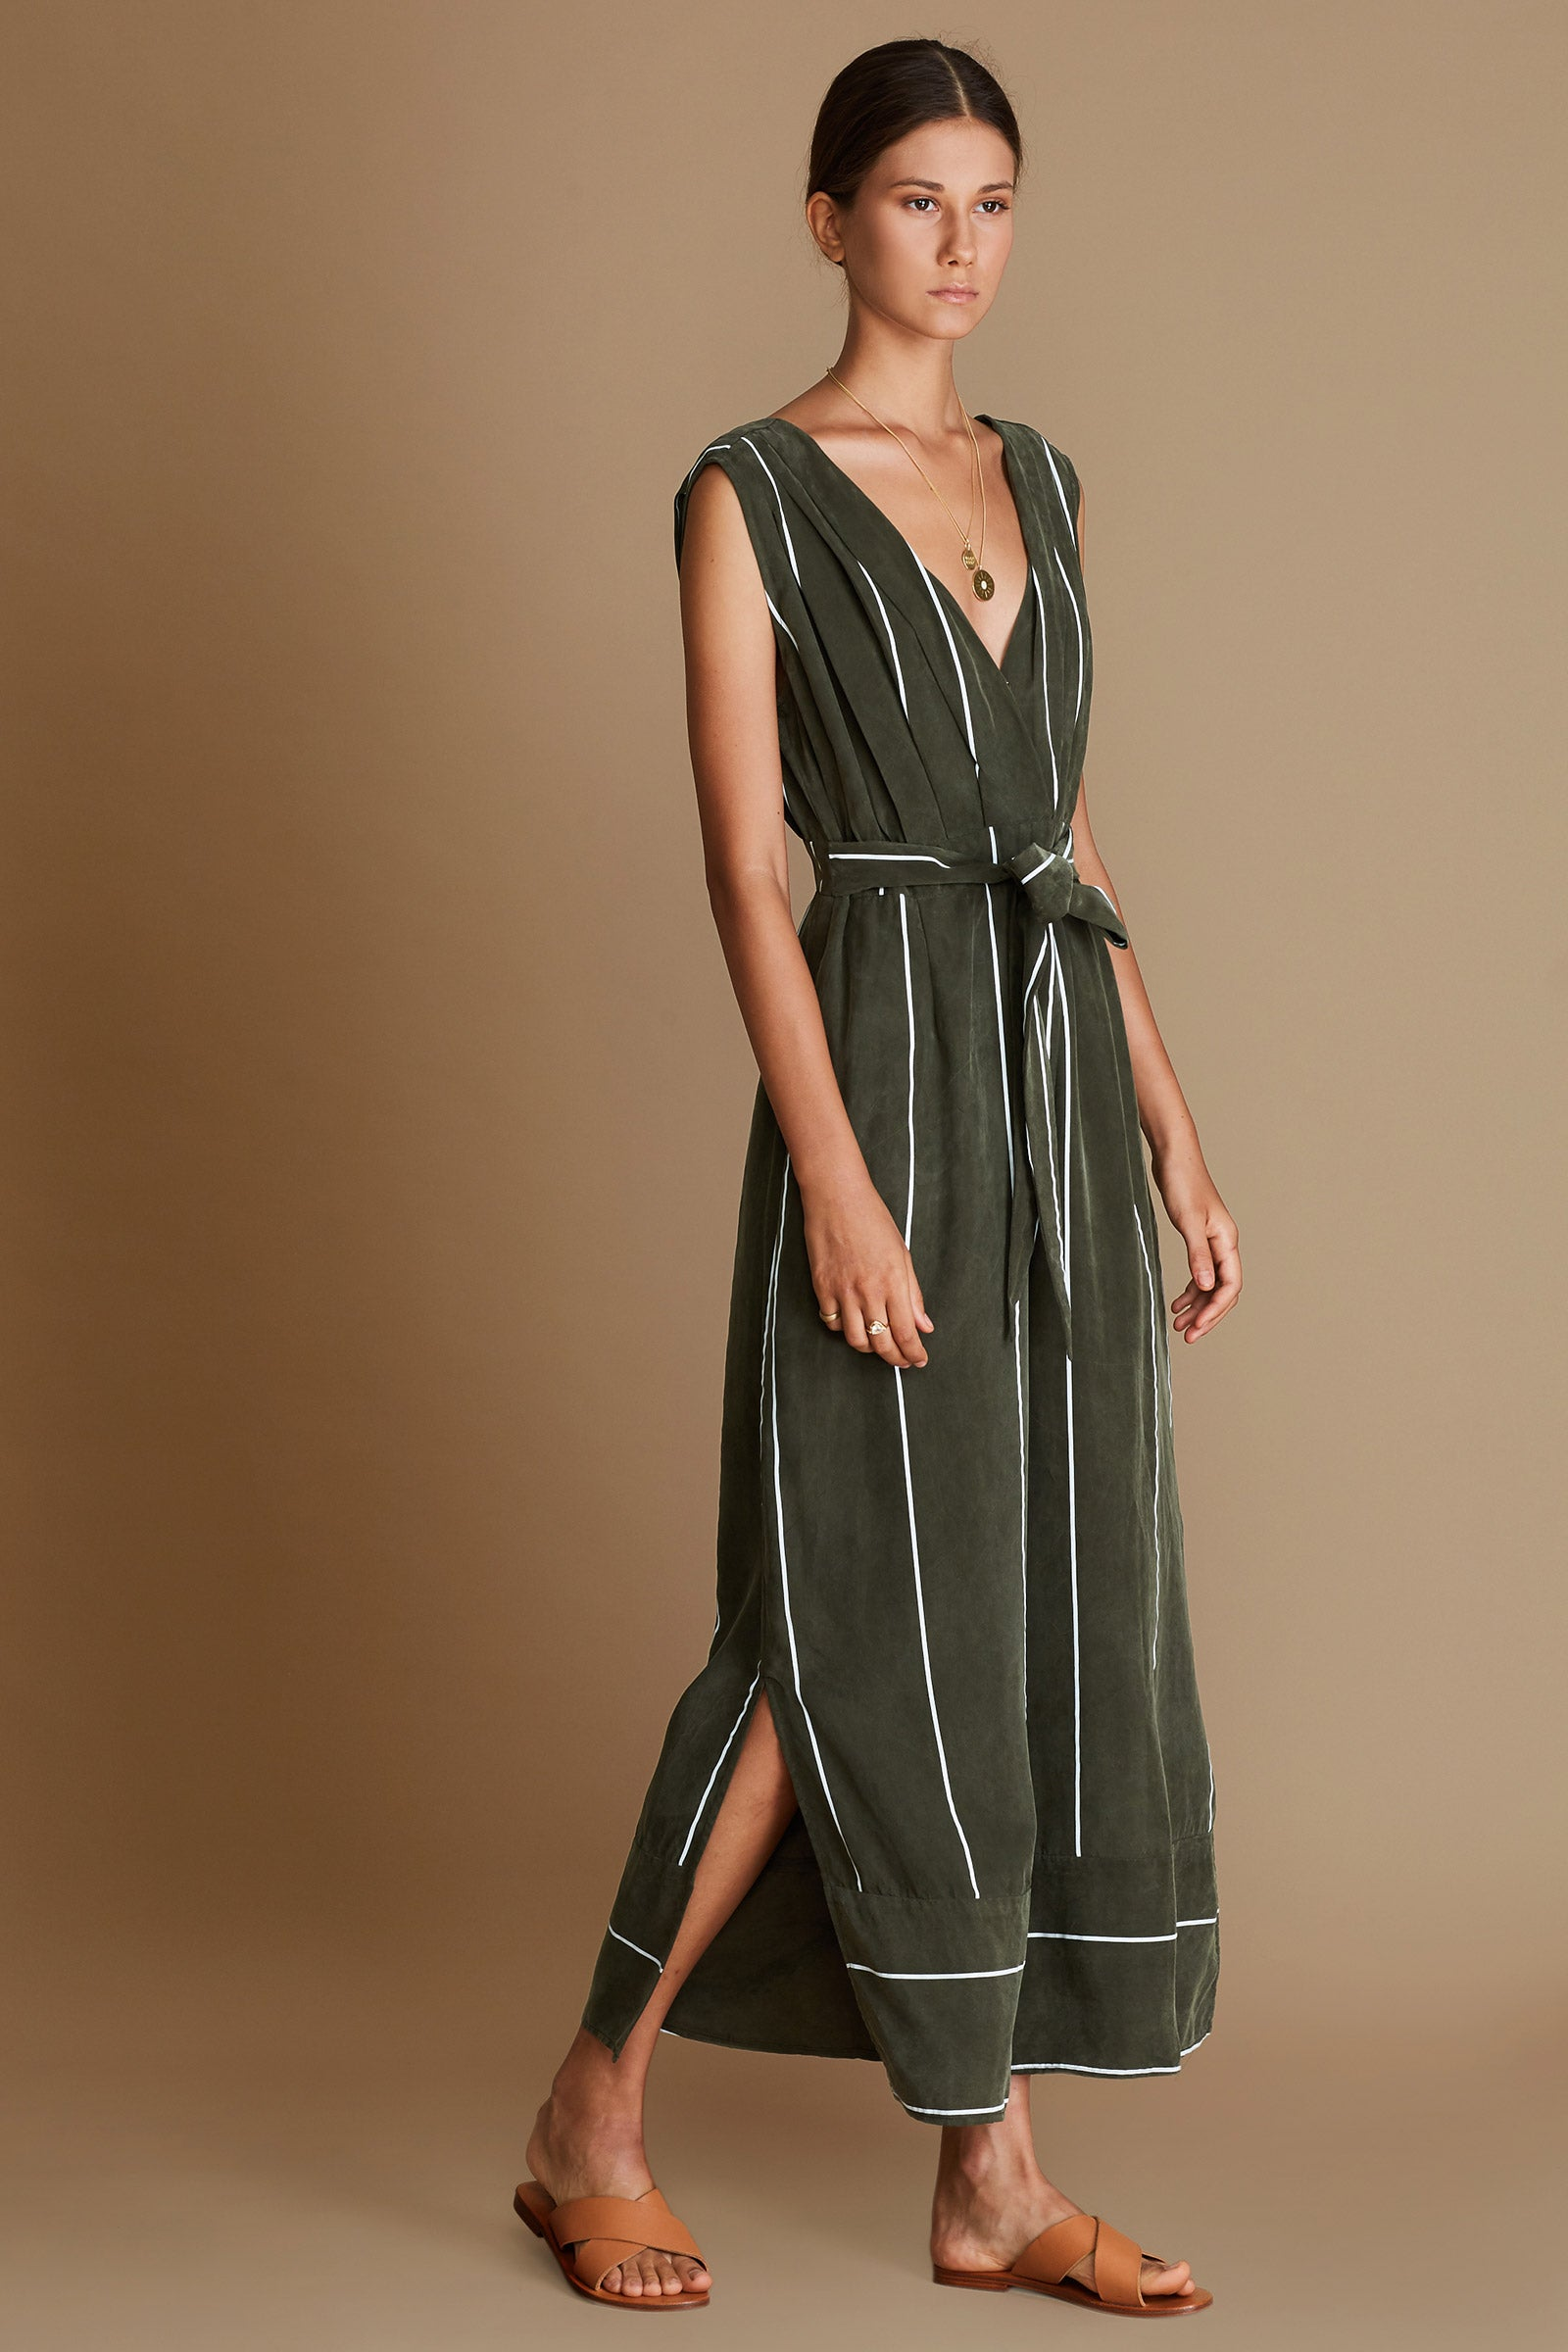 THE PIA JUMPSUIT